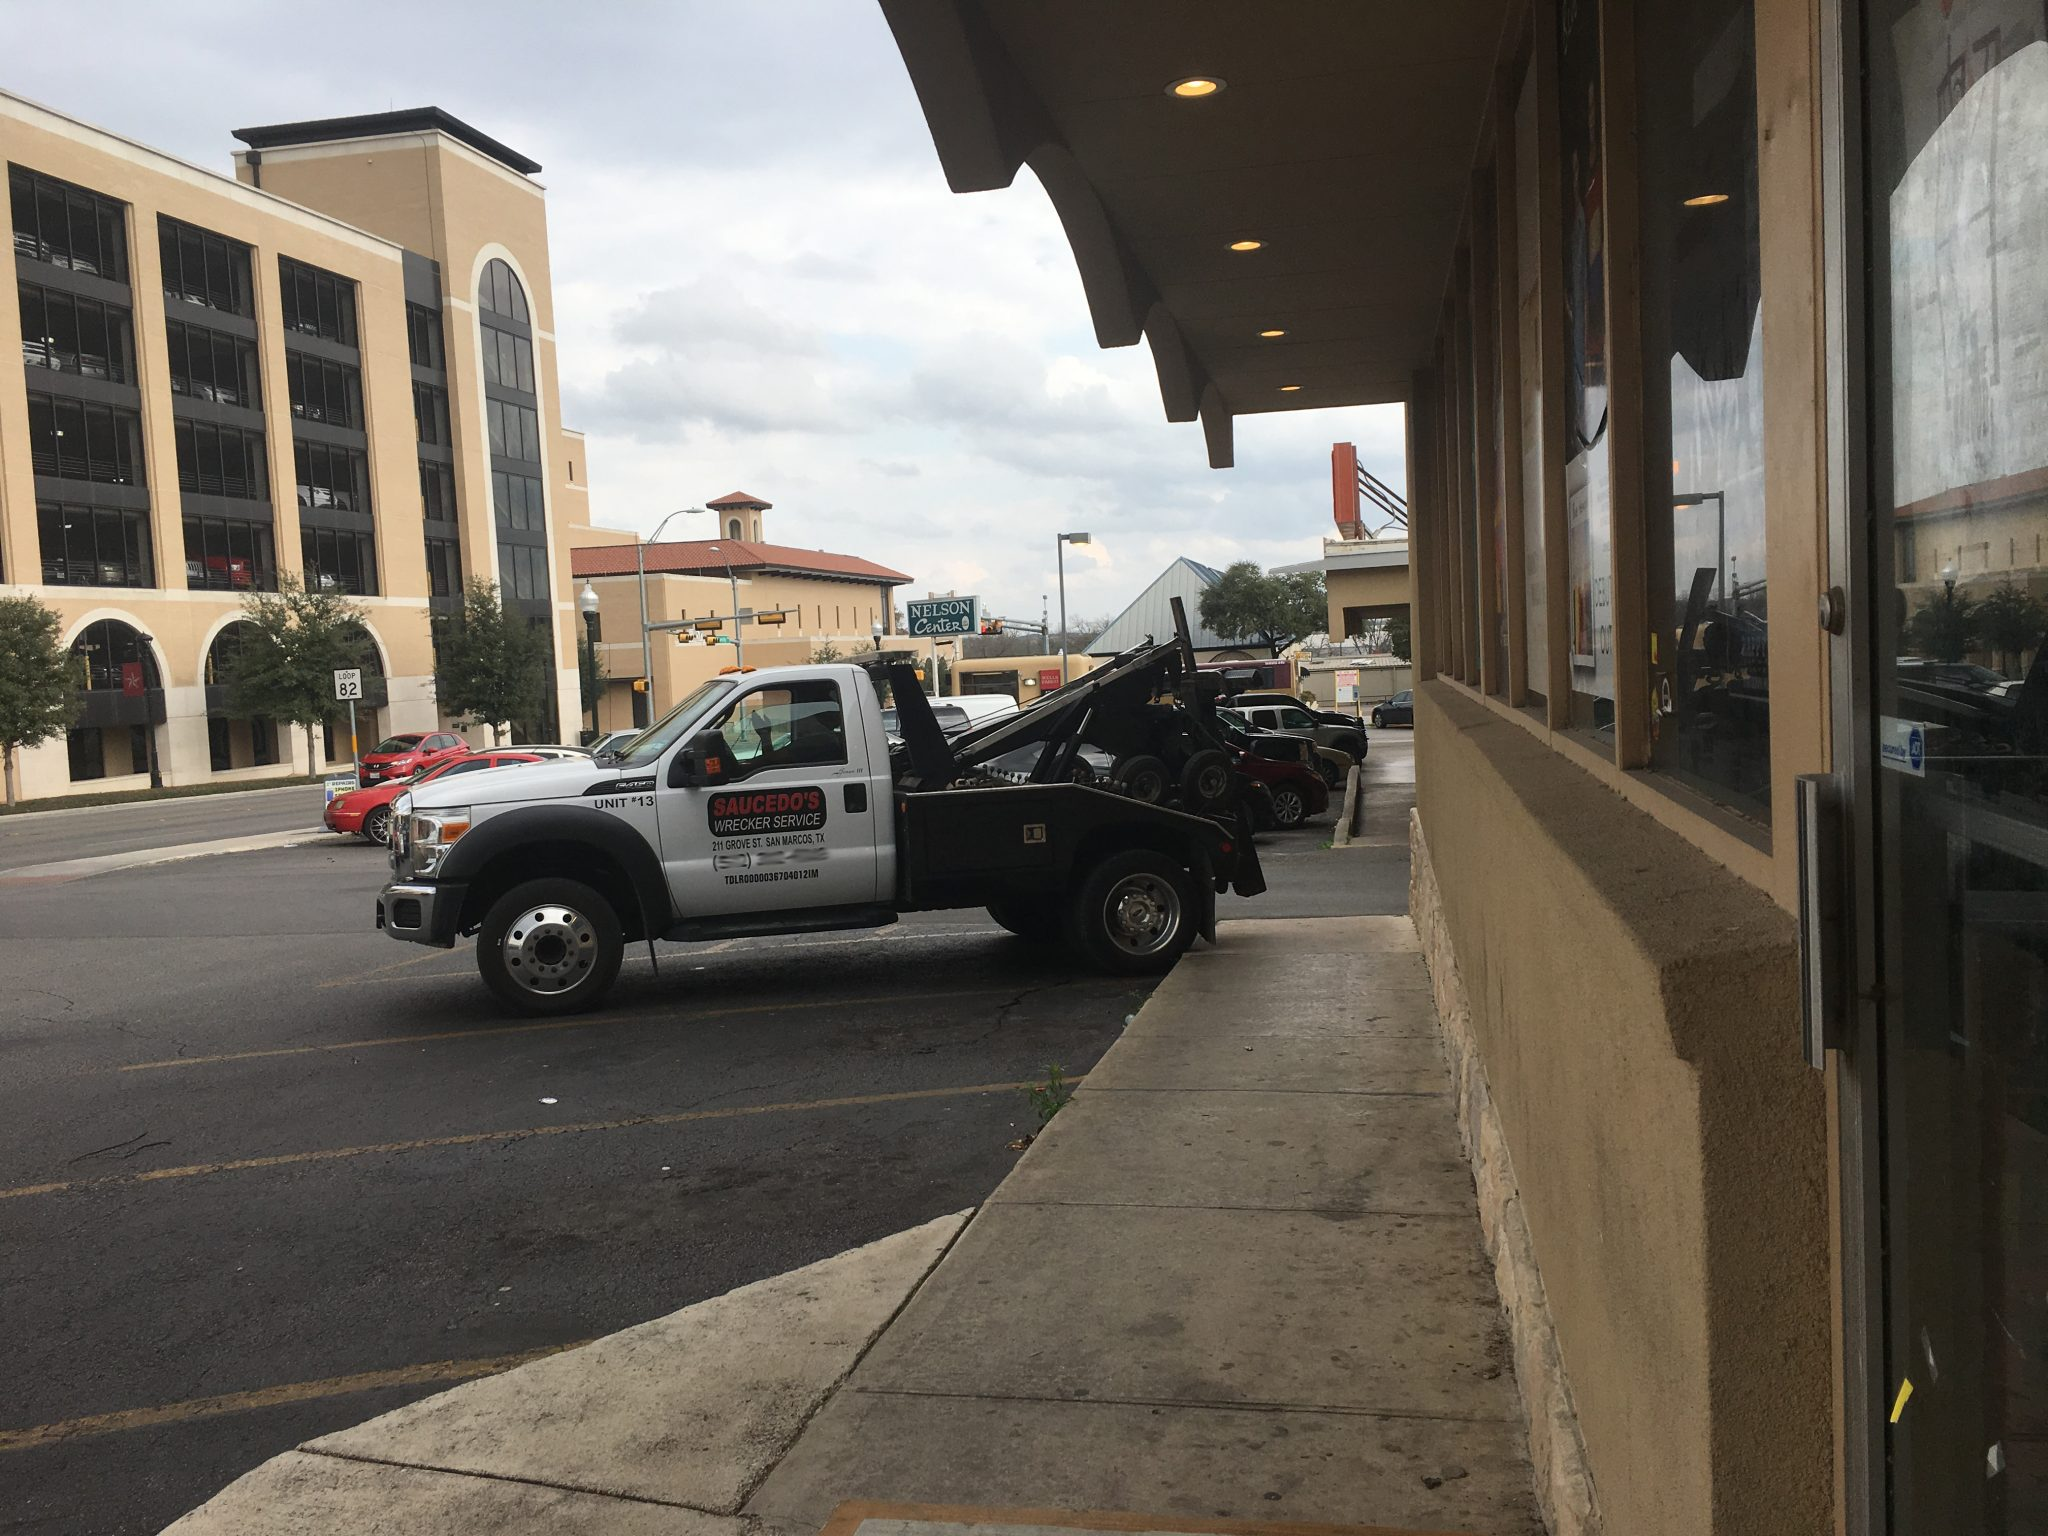 Tow truck in front of Superfly's Lone Star Music Emporium at the Nelson Center in San Marcos, Texas. (Photo by Richard Skanse)